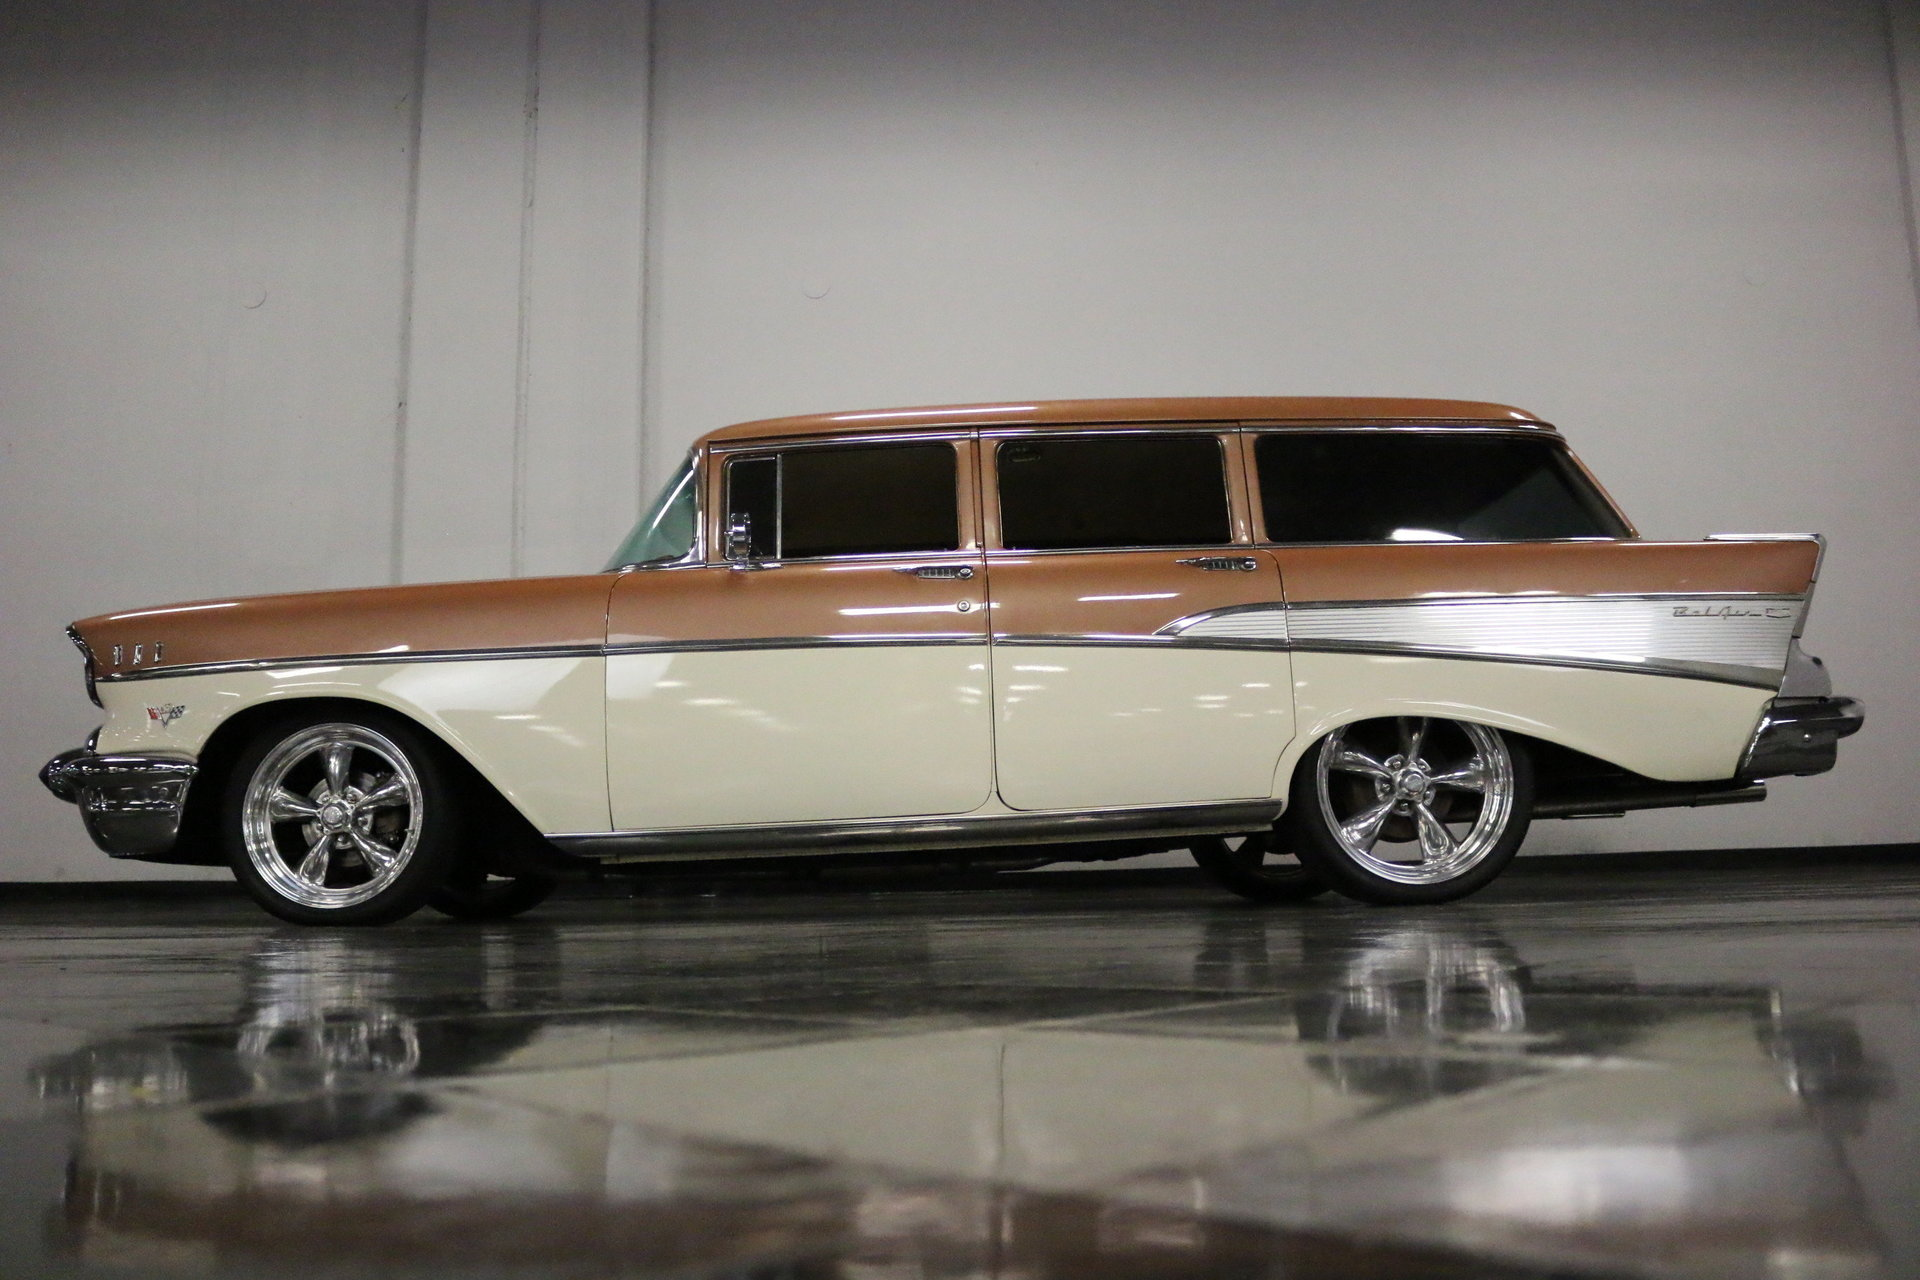 1957 Chevrolet 210 Streetside Classics The Nations Trusted Chevy Station Wagon View 360